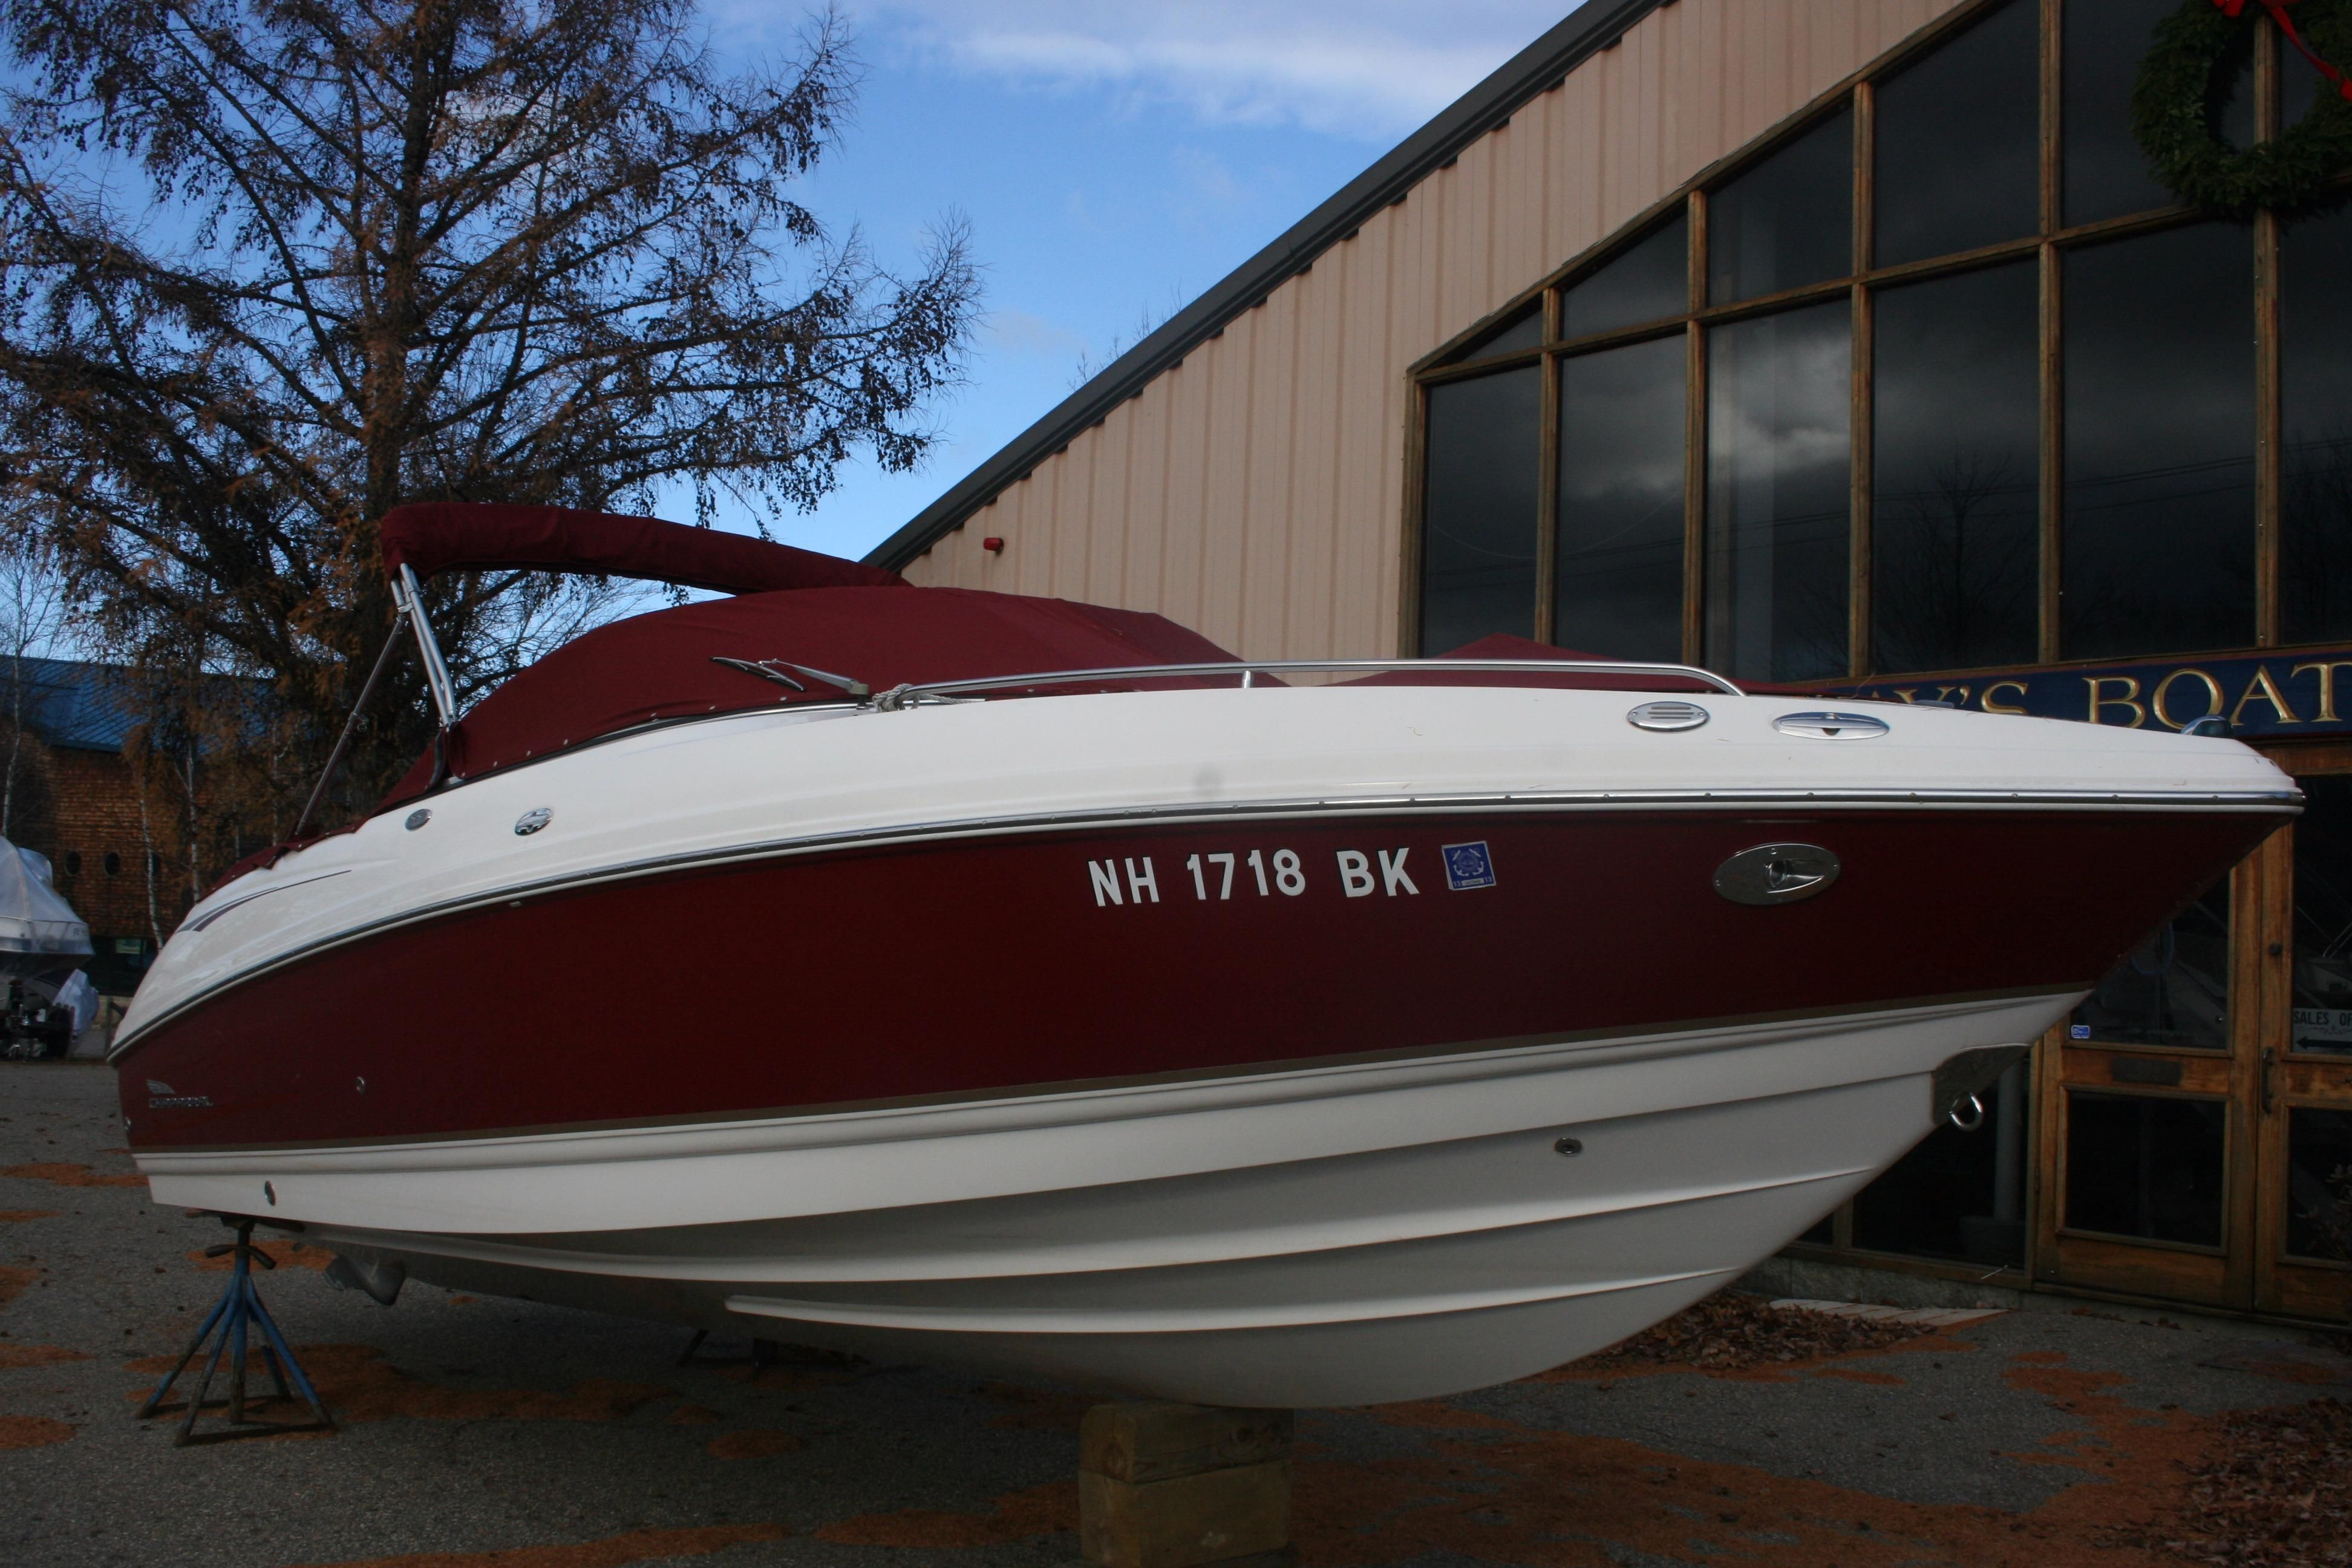 Volvo Dealers Nh >> 2004 Chaparral 230 SSi Power Boat For Sale - www.yachtworld.com